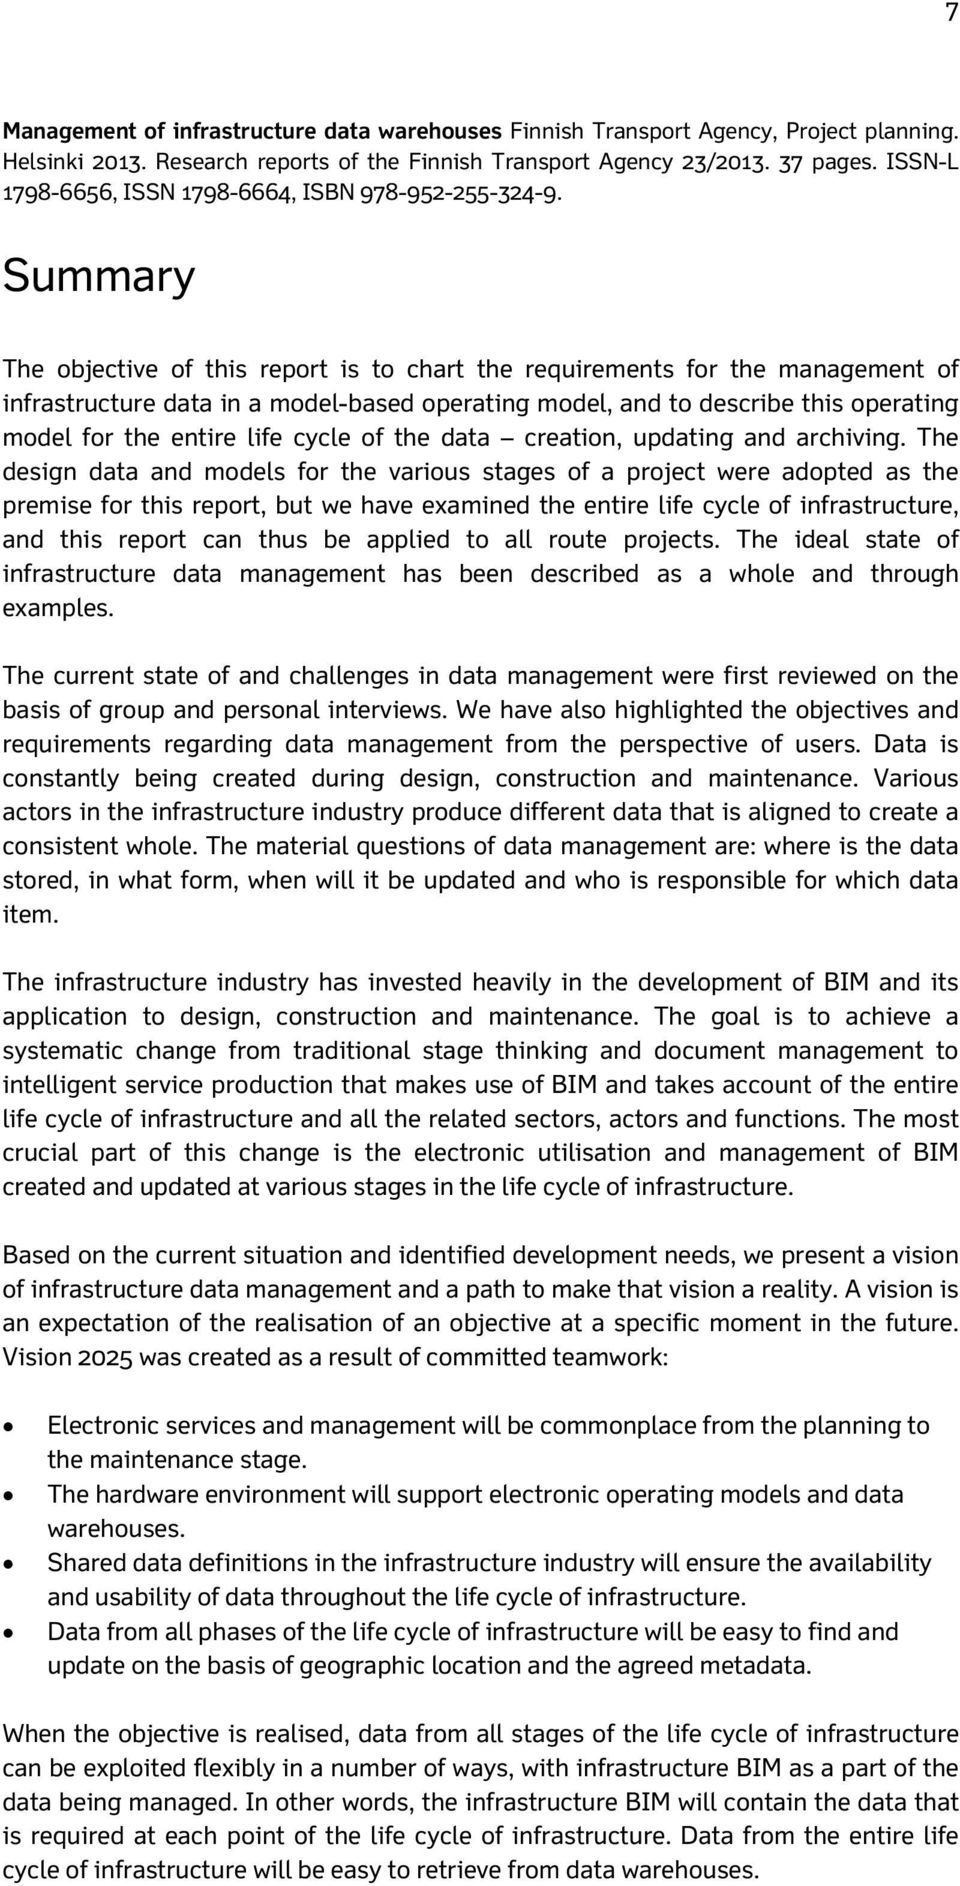 Summary The objective of this report is to chart the requirements for the management of infrastructure data in a model-based operating model, and to describe this operating model for the entire life